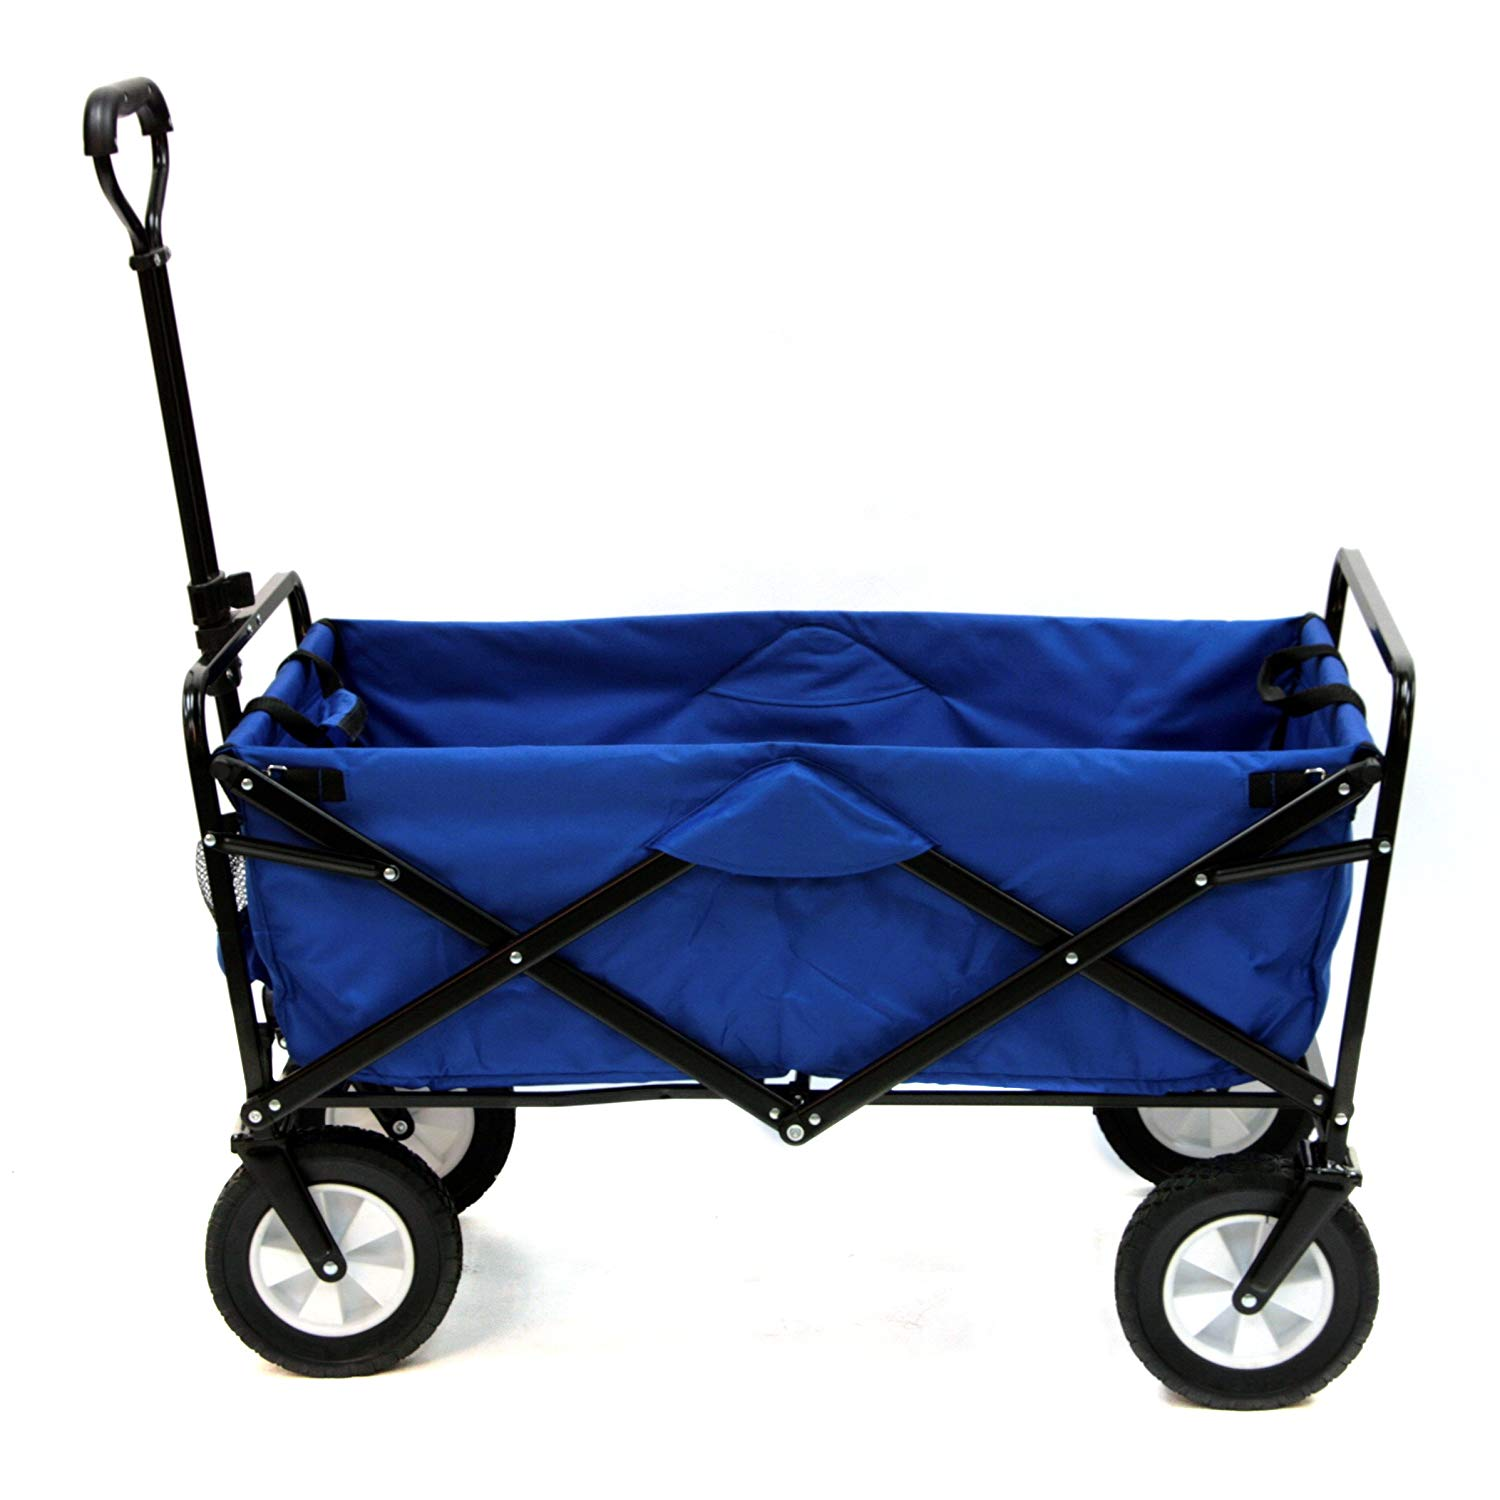 Great wagon for the kids! Mac Sports Collapsible Folding Outdoor Utility Wagon, Blue